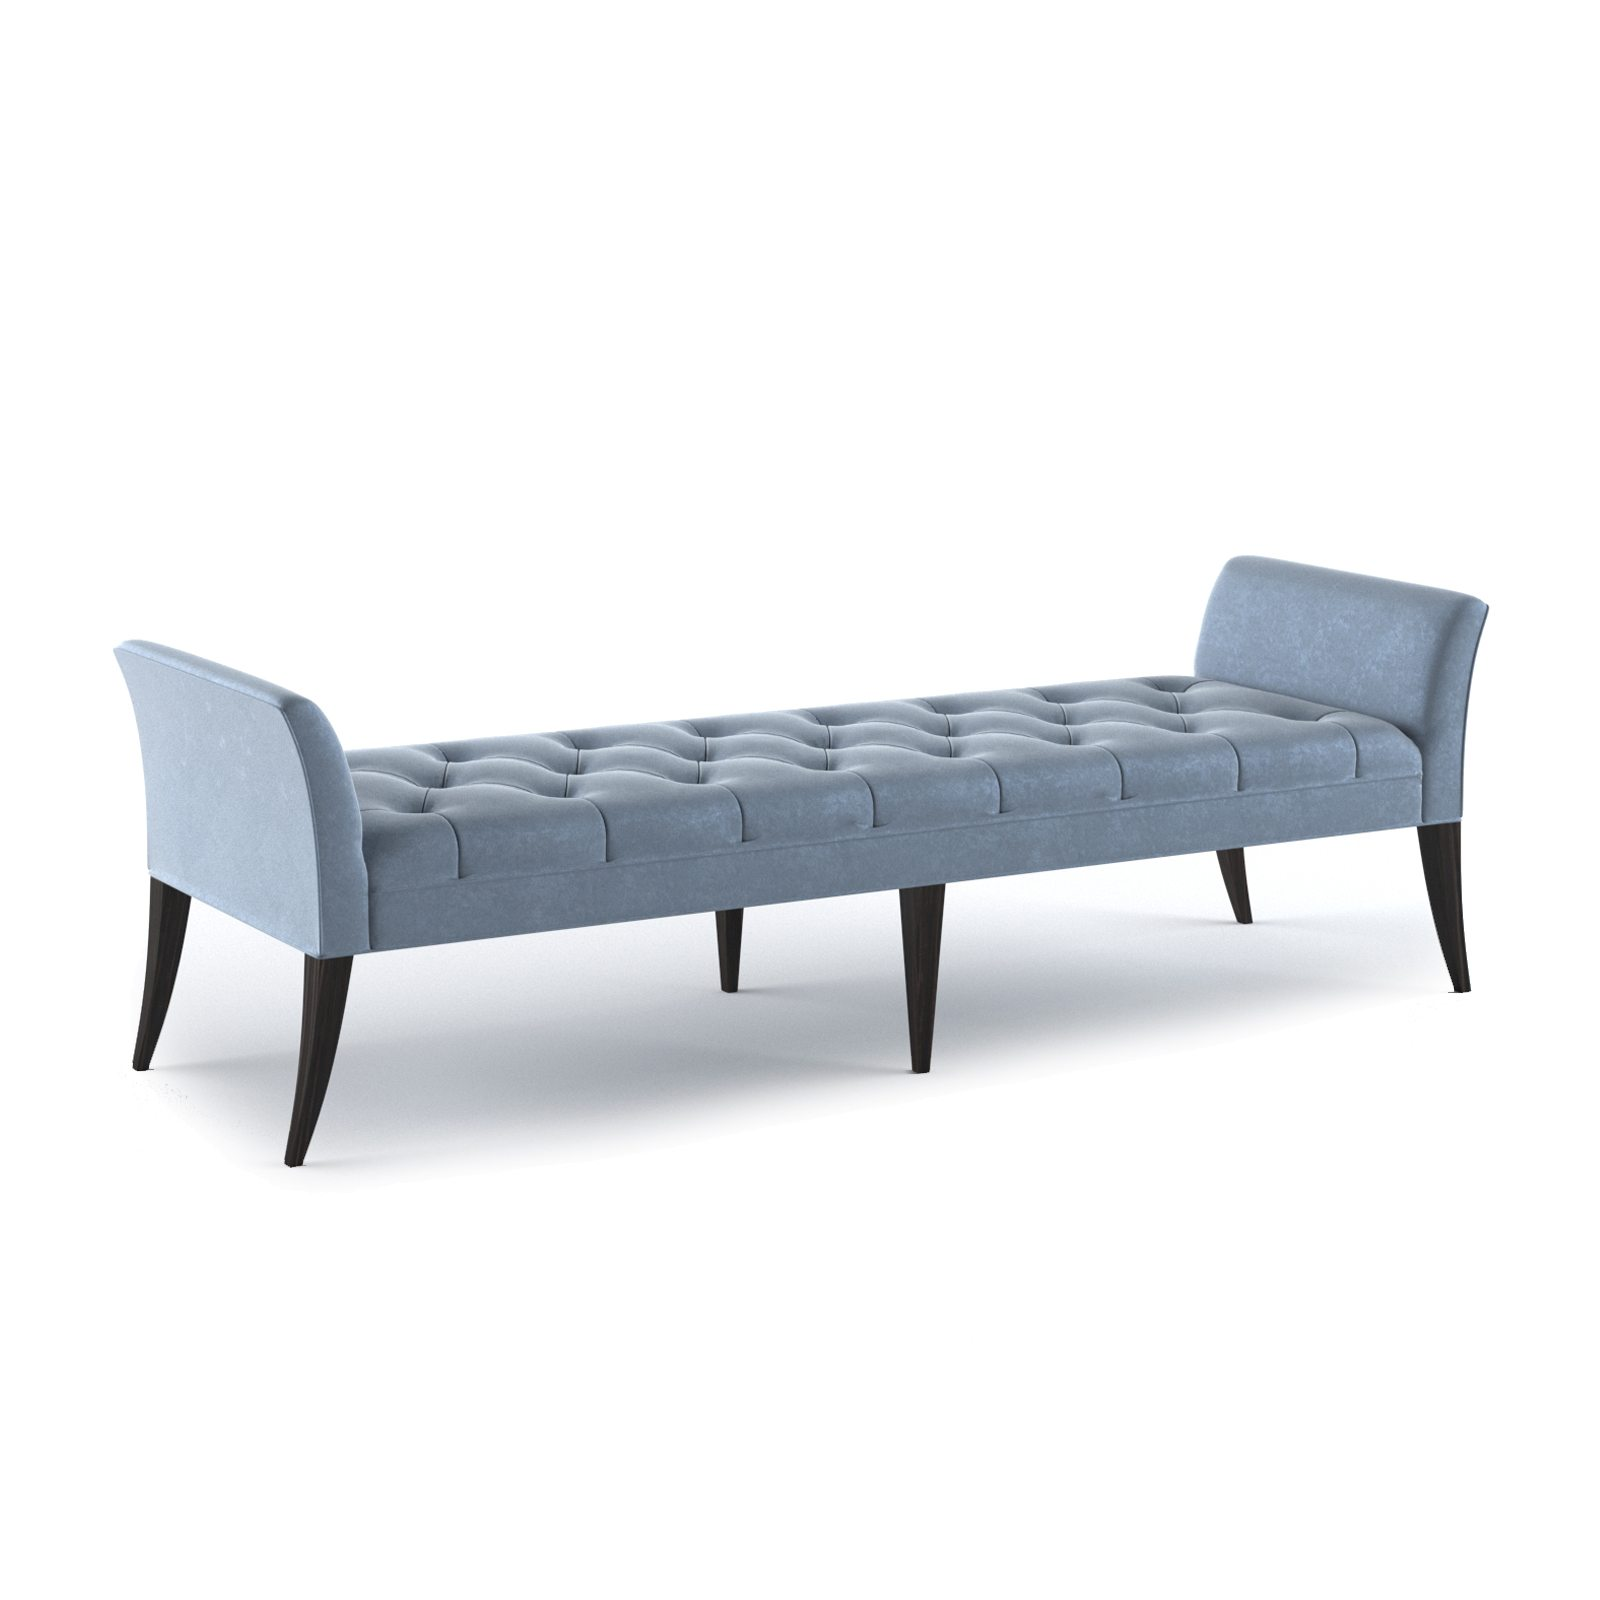 Altman Bench 02 by Bonham & Bonham 06